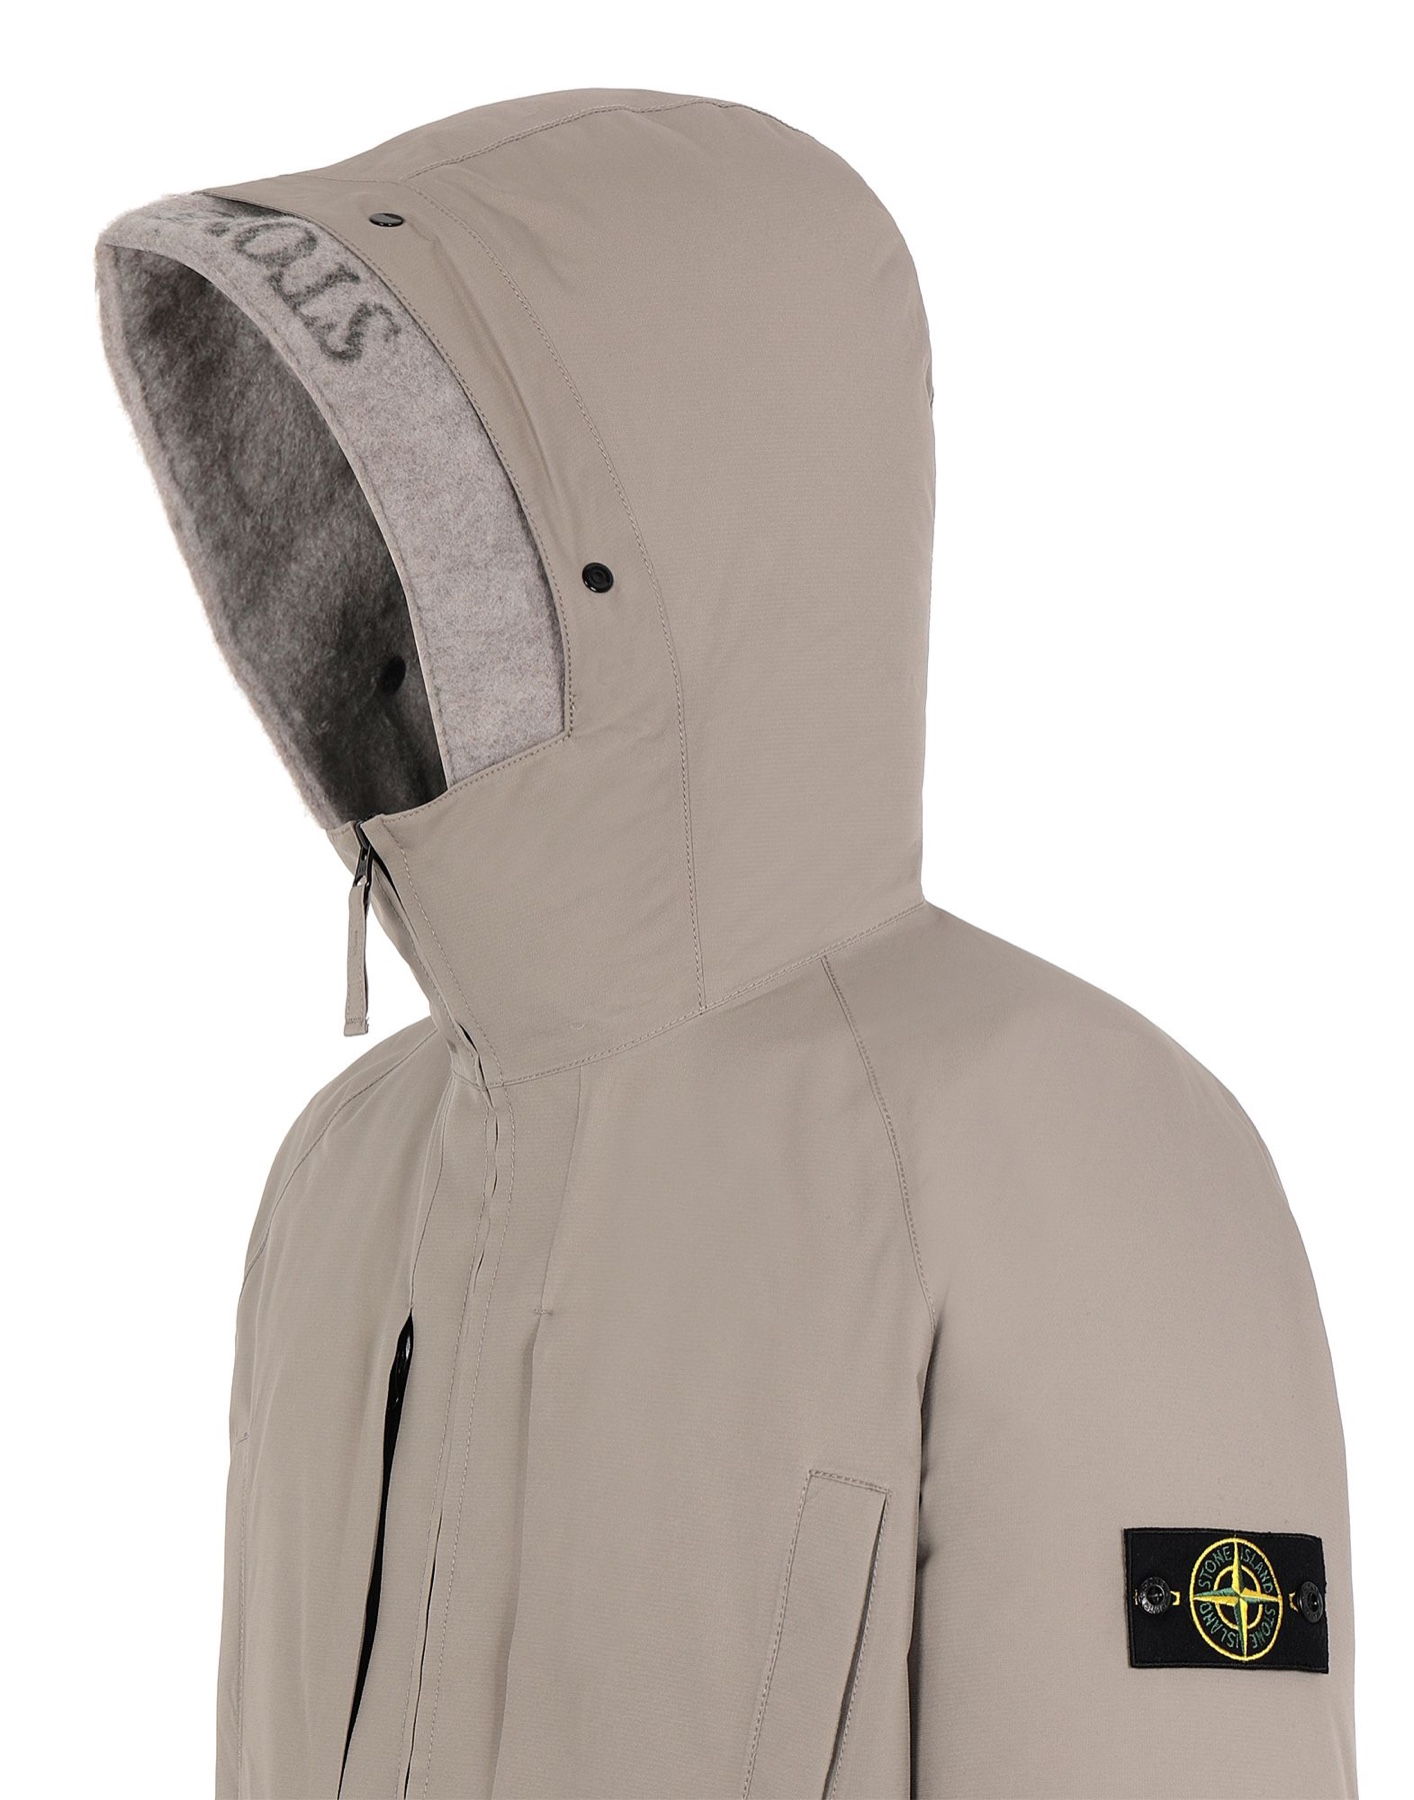 Stone Island GORE-TEX jacket taupe